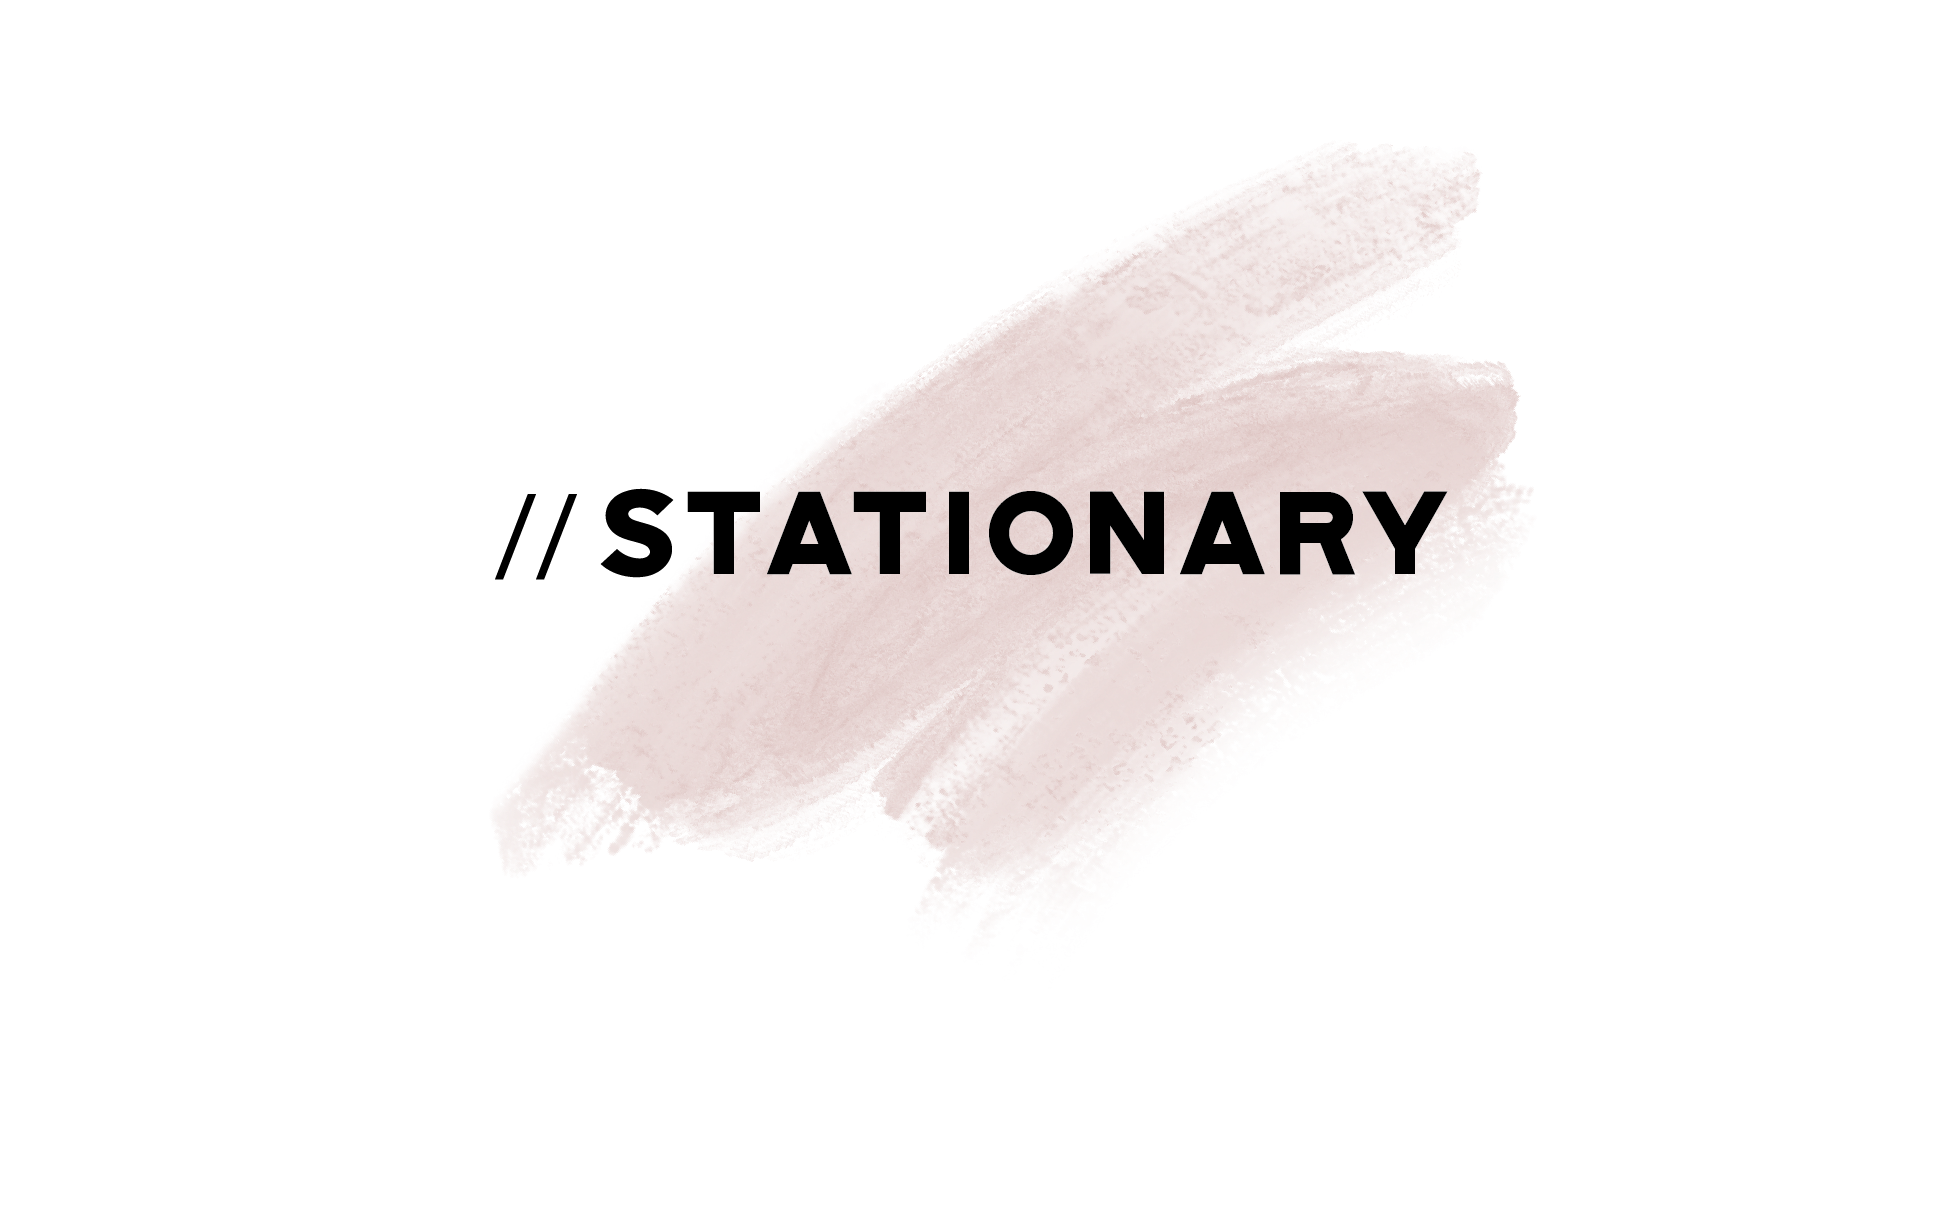 stationary.png